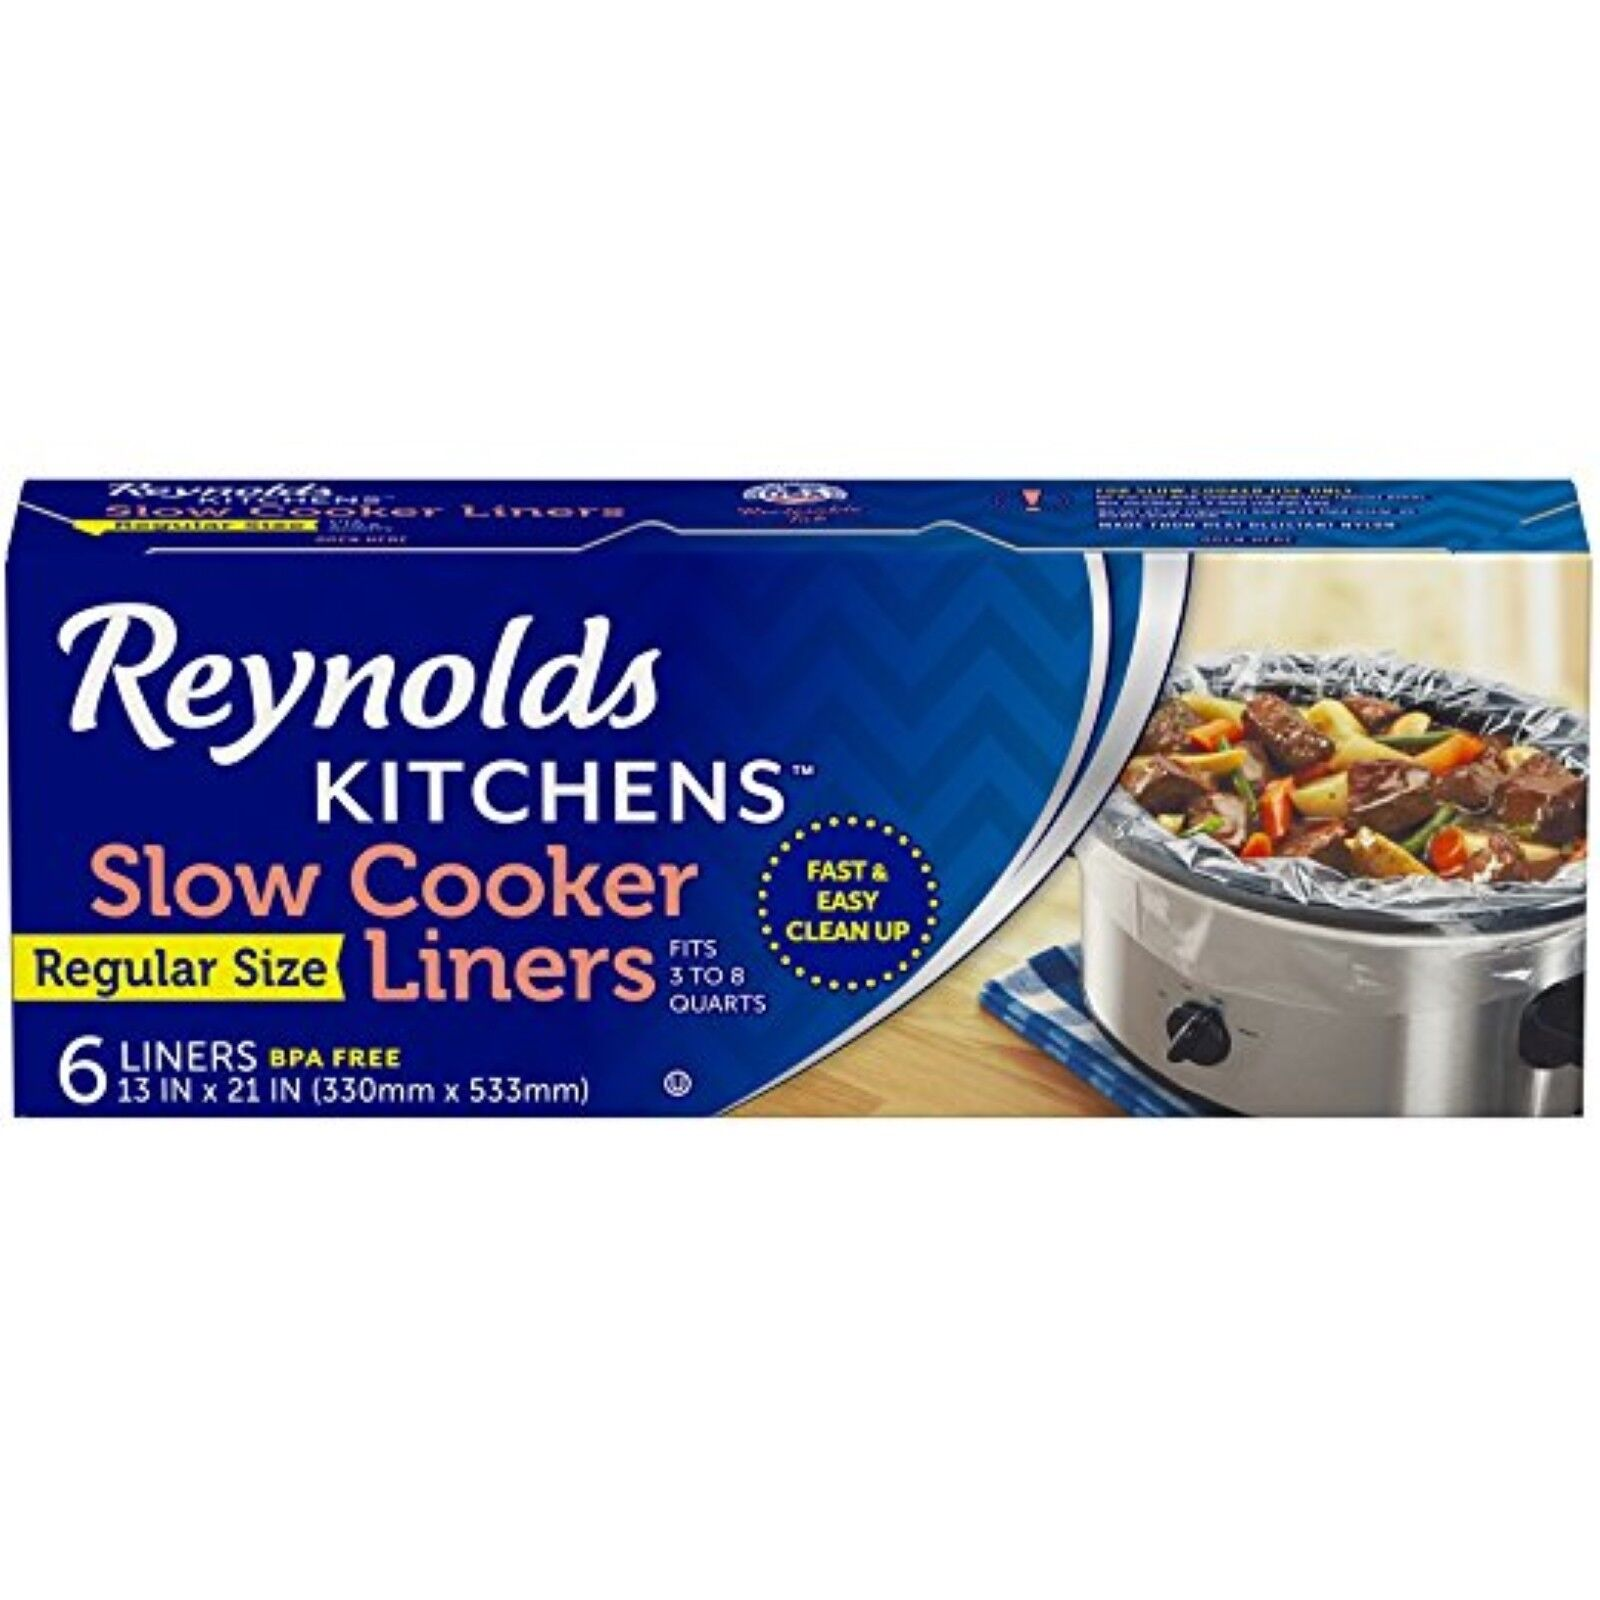 Reynolds Kitchens Slow Cooker Liners